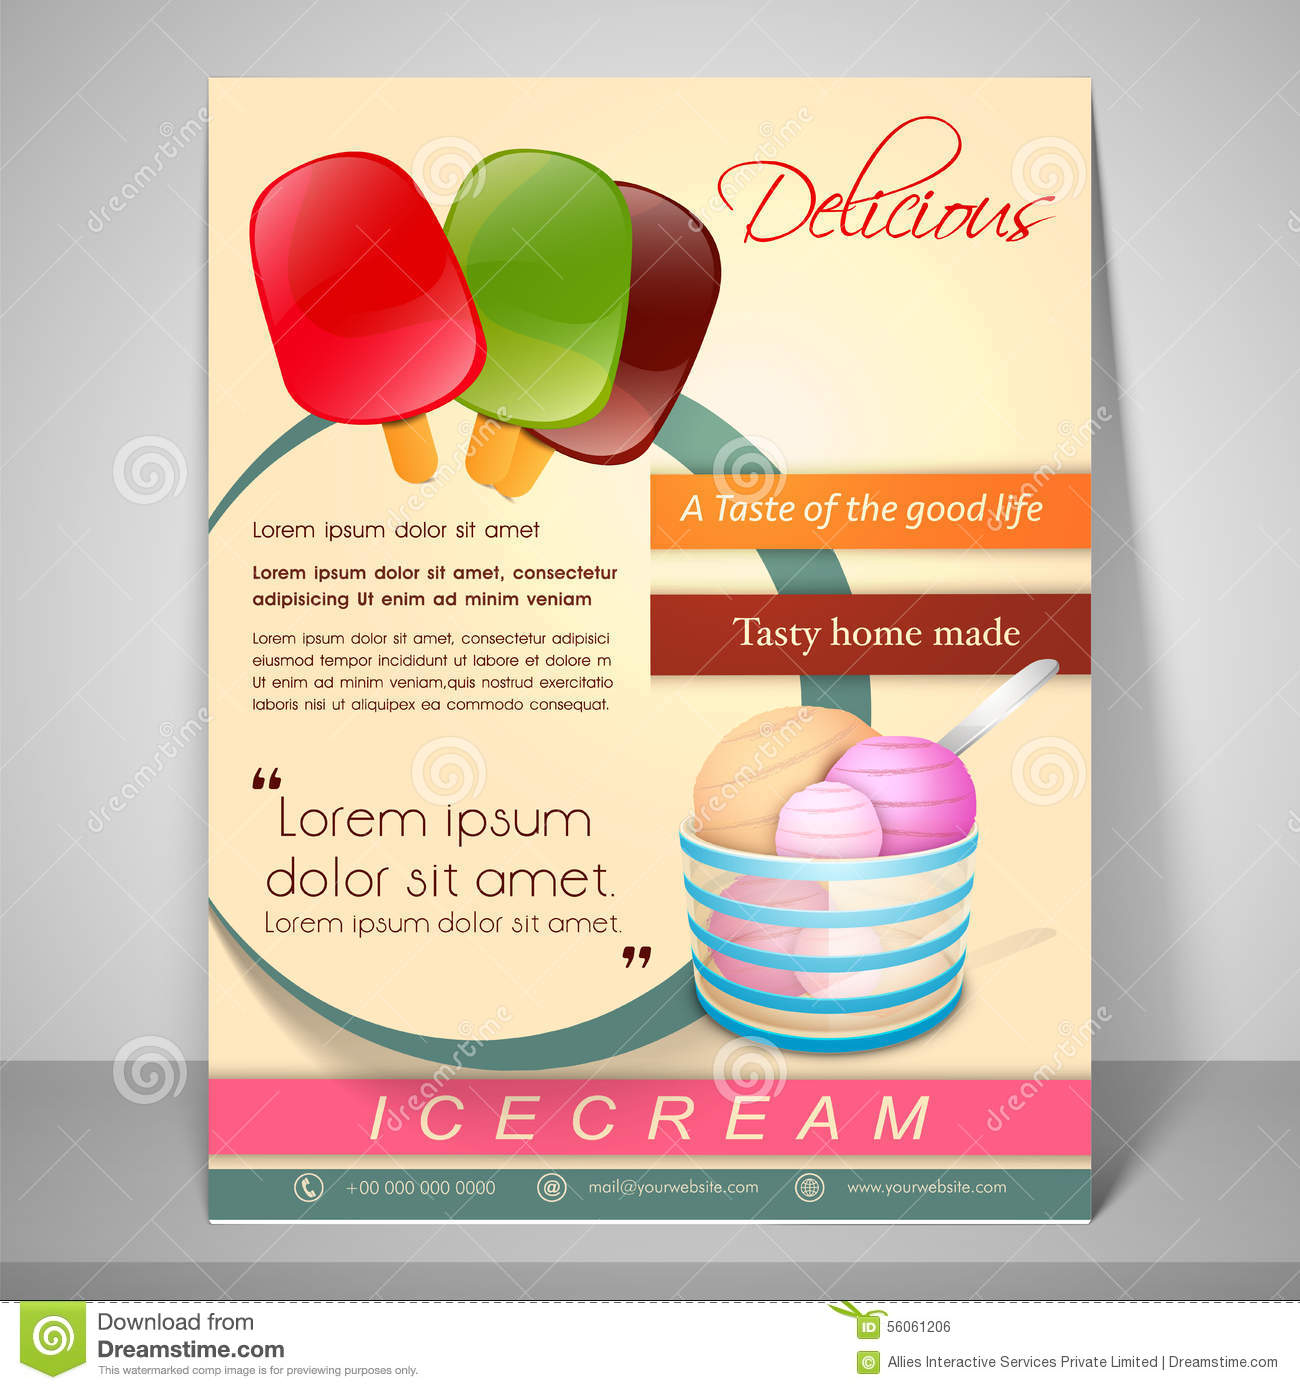 To acquire Menu stylish bar design picture trends